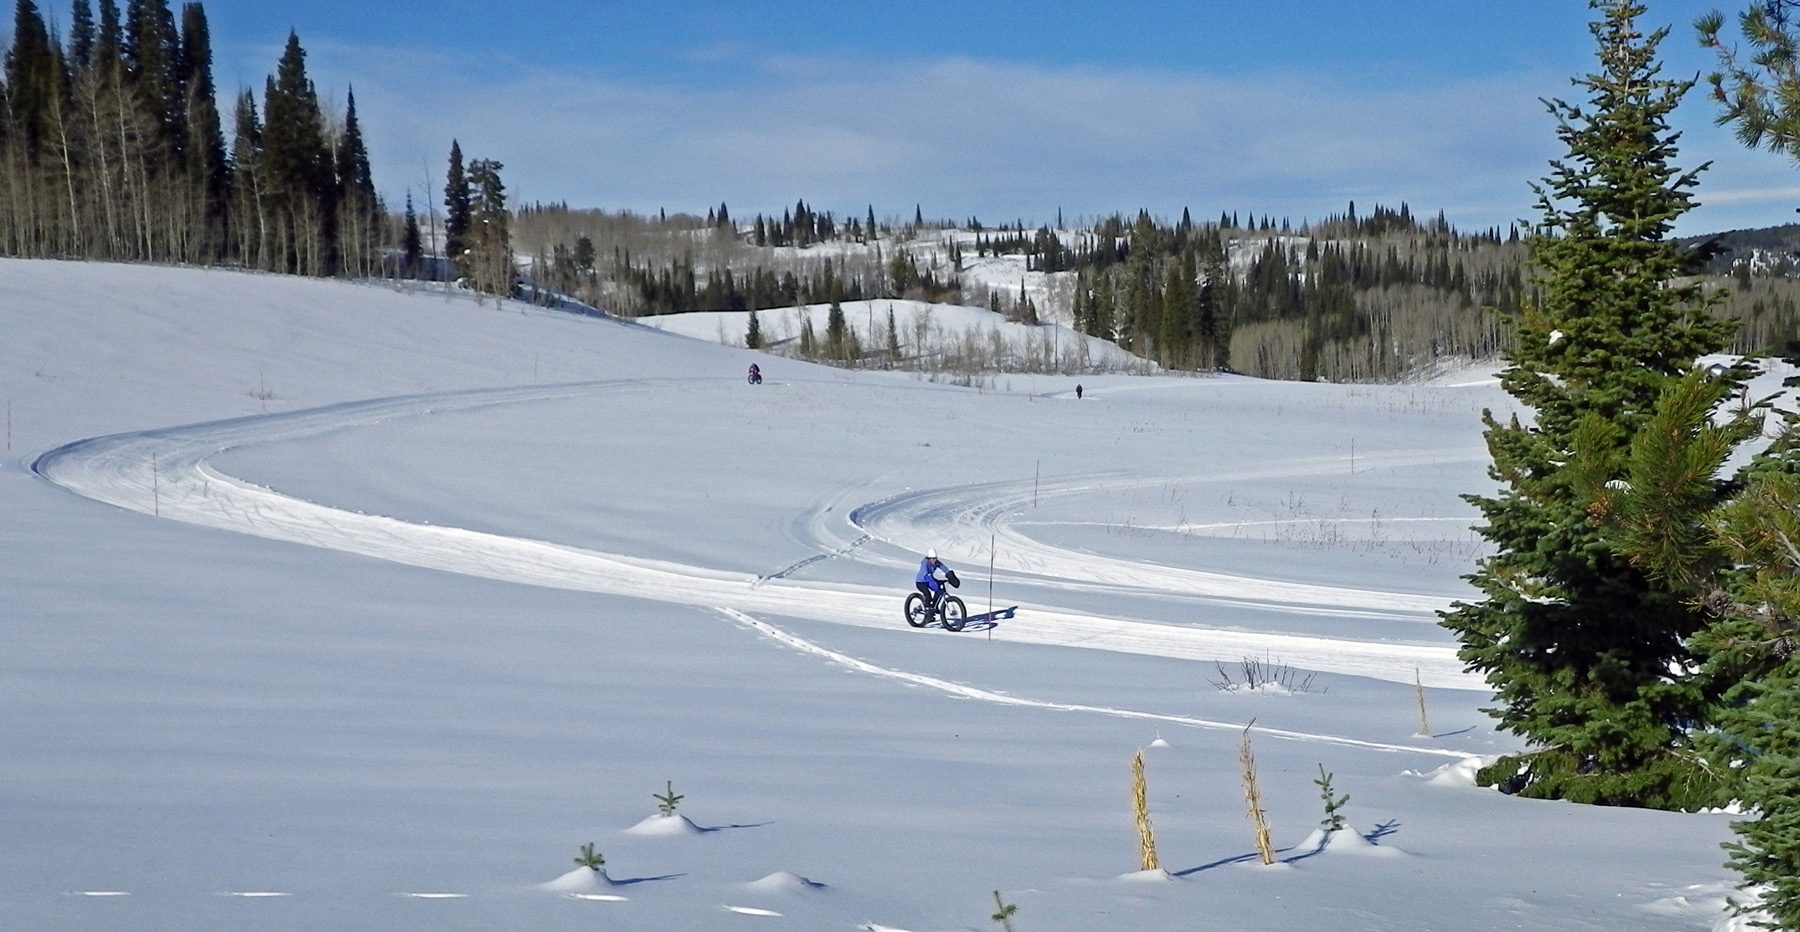 The Grand Targhee Fat Tire